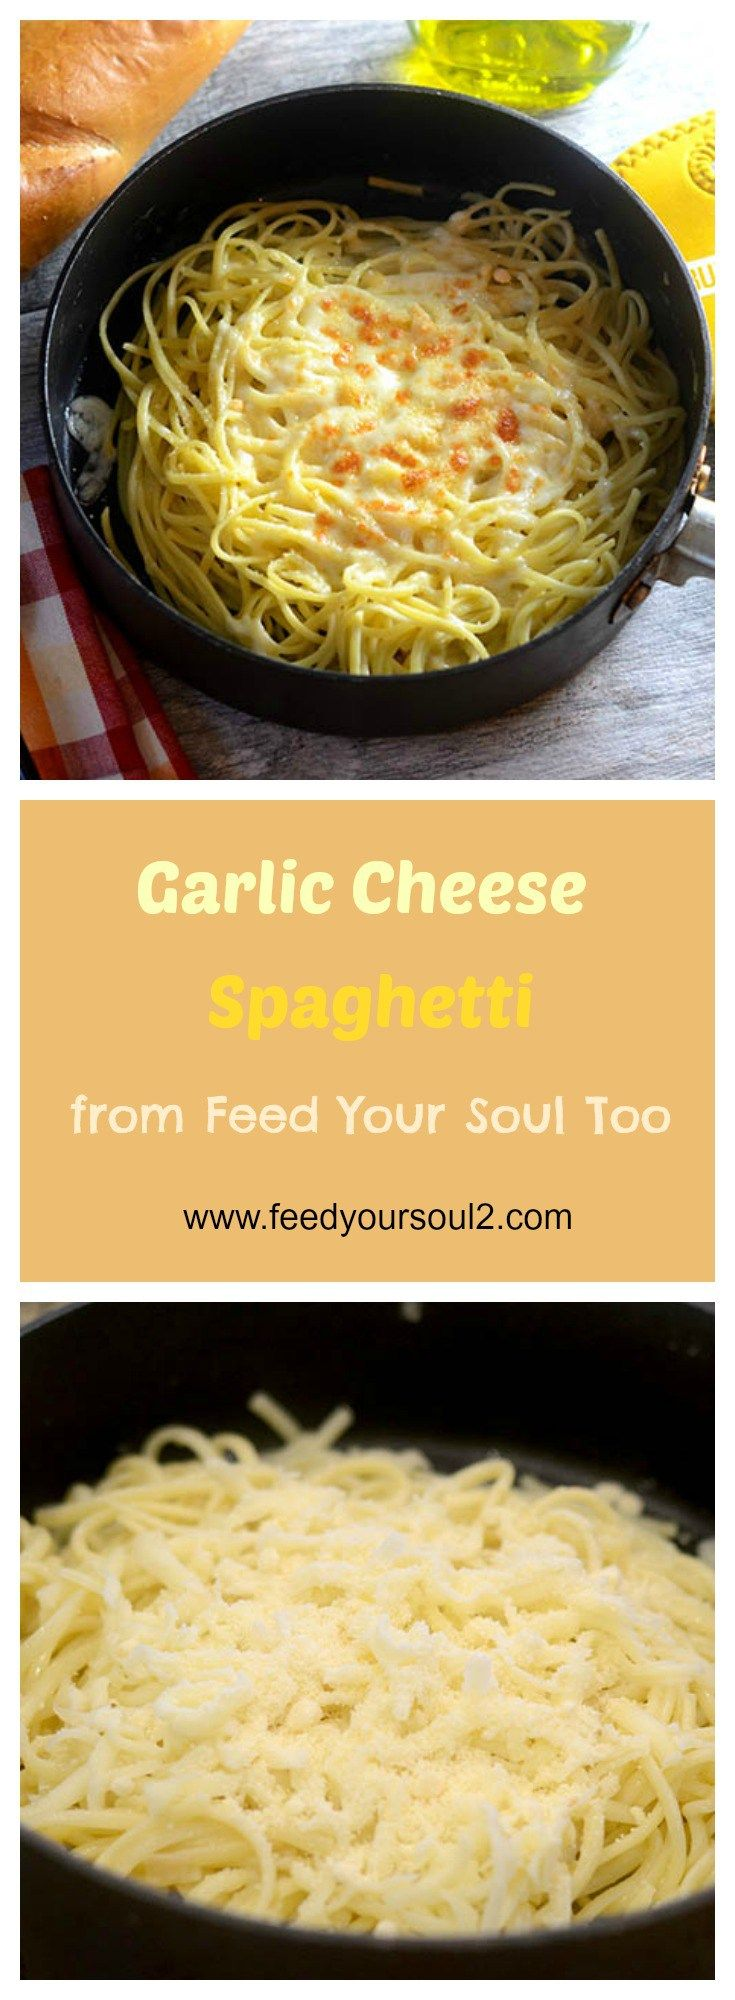 Garlic Cheese Spaghetti from Feed Your Soul Too